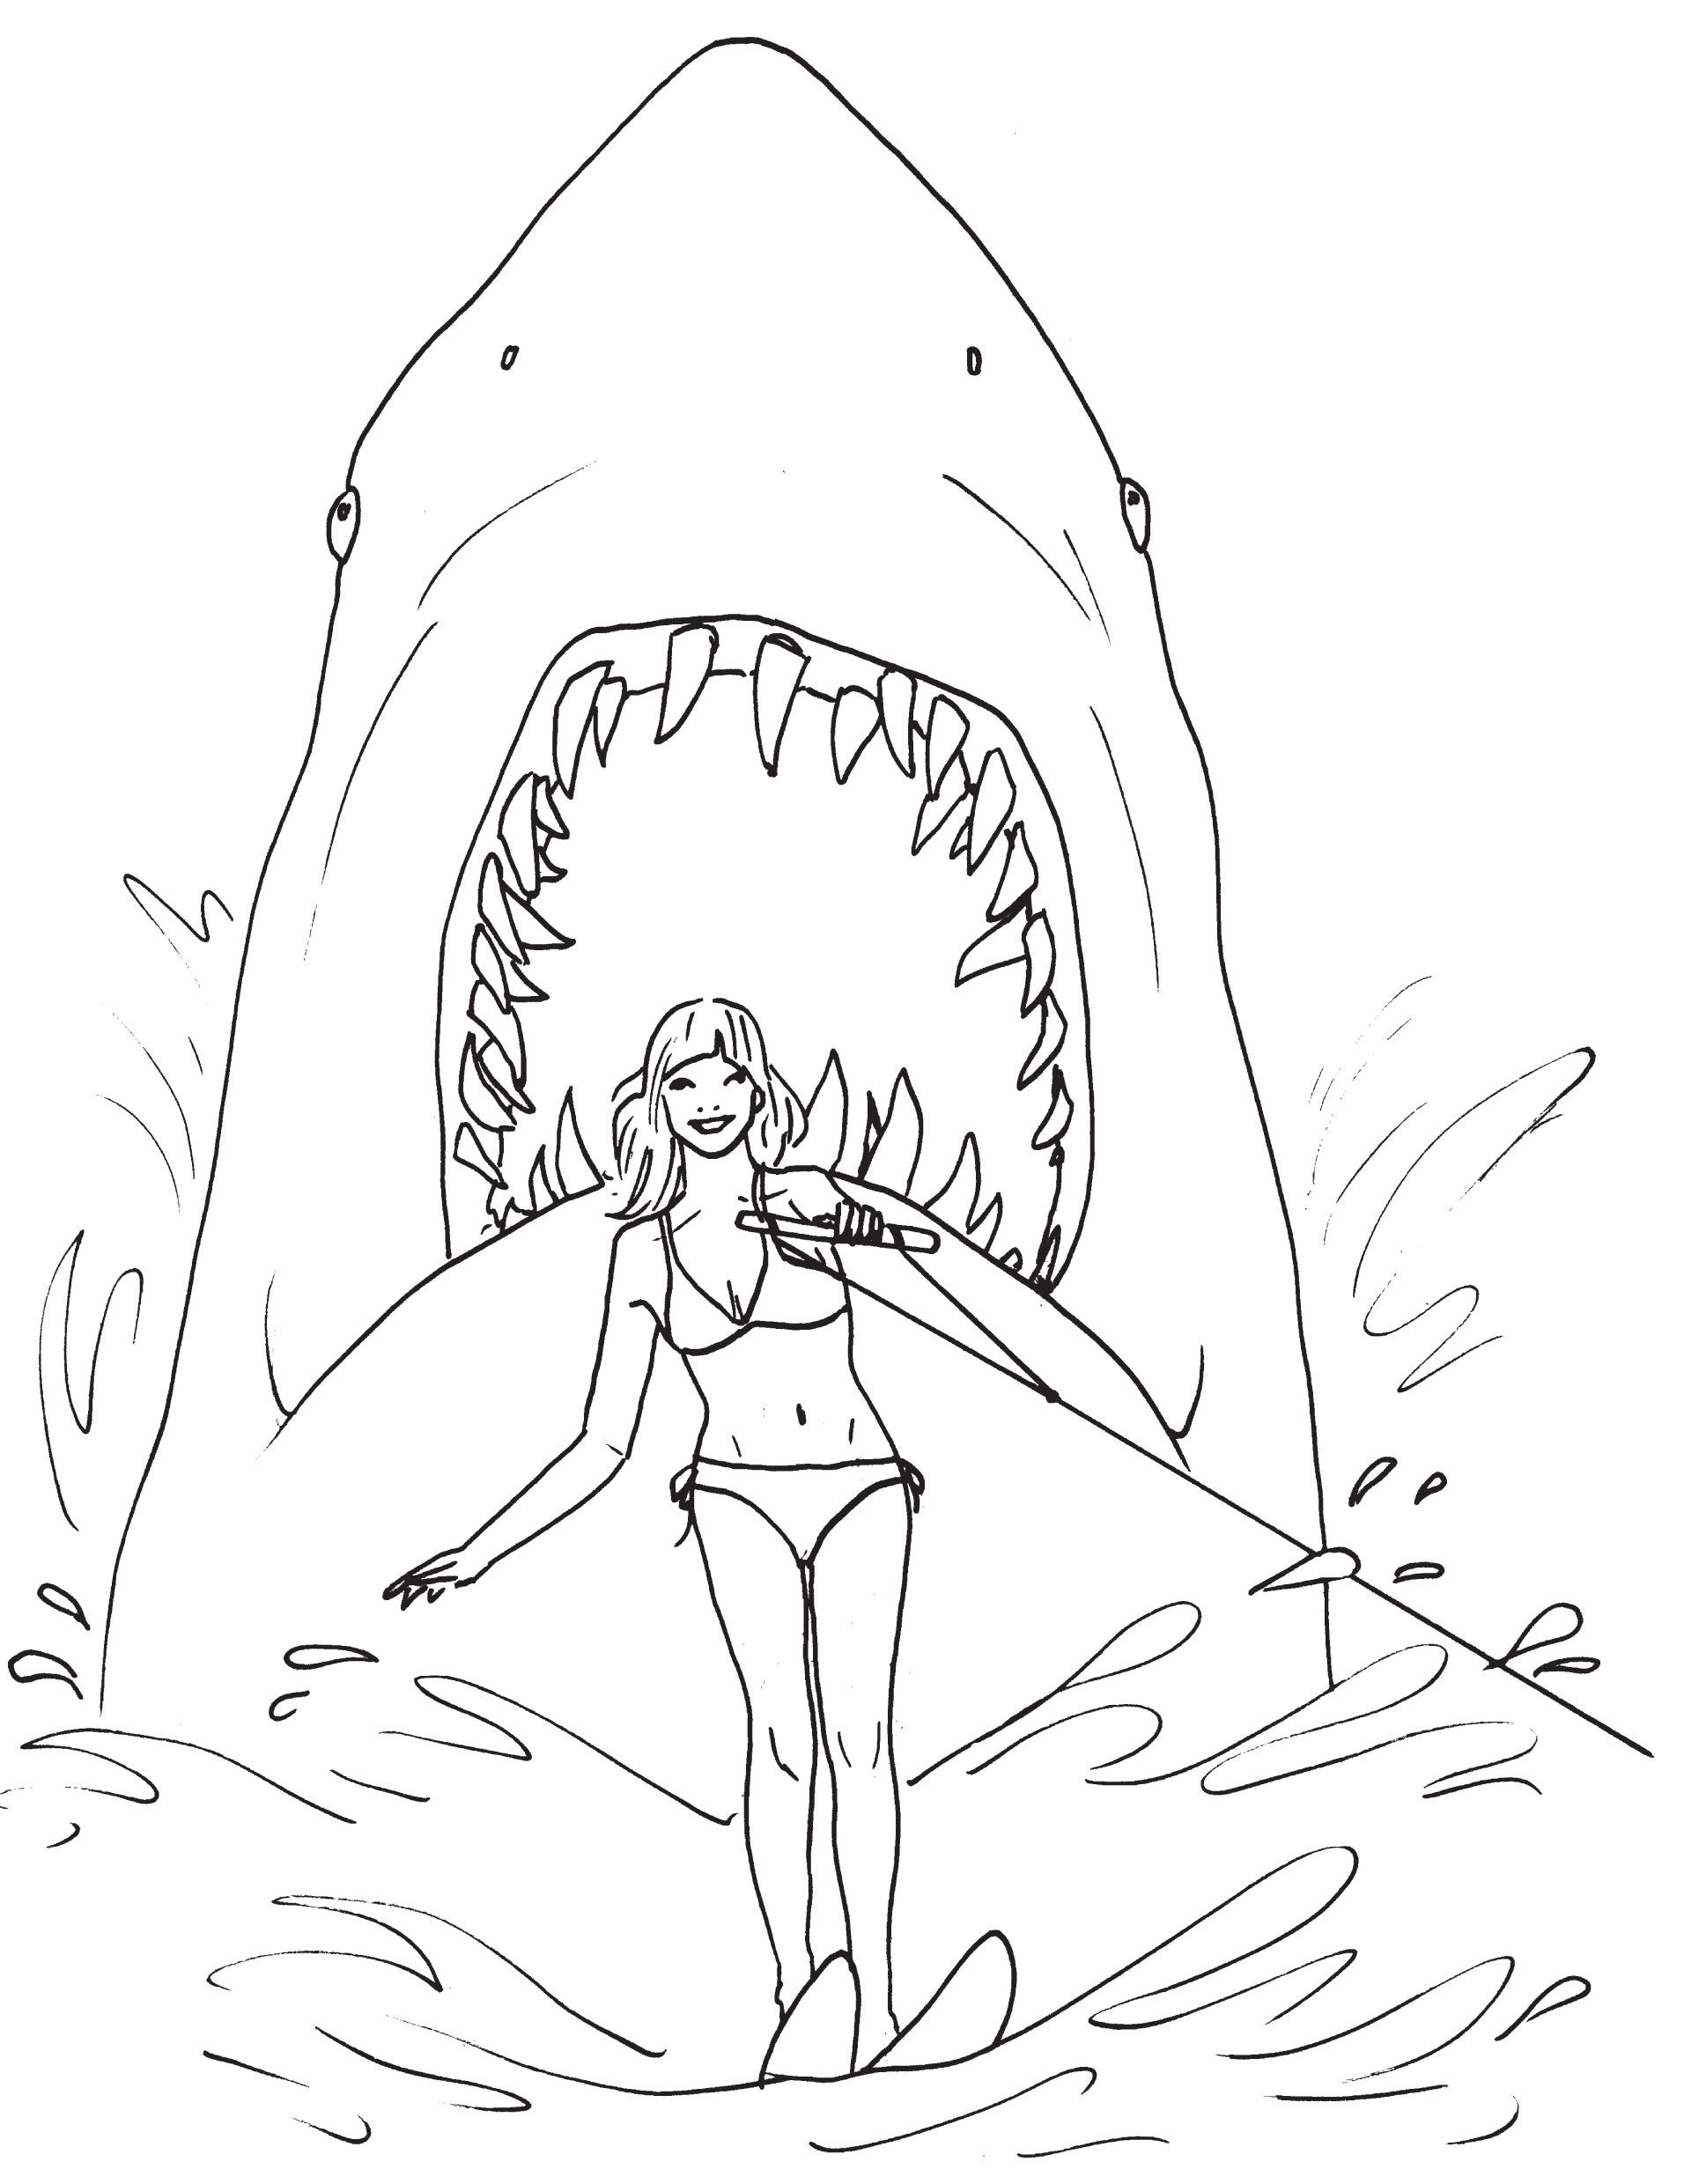 Jaws Jpg 1912 2480 Shark Coloring Pages Cartoon Coloring